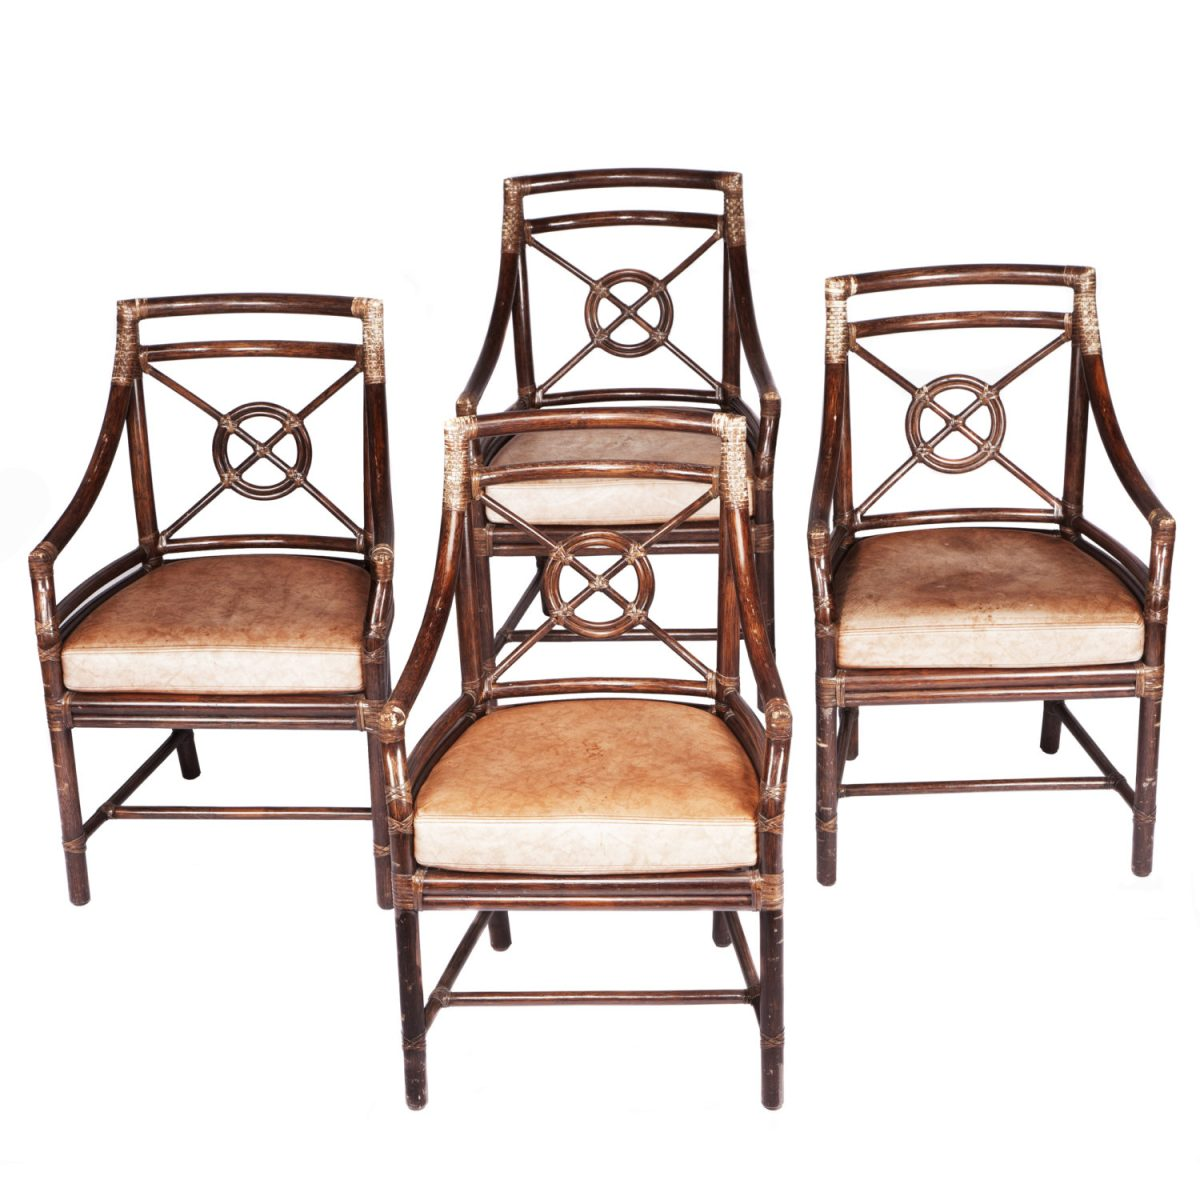 "<p><a href=""https://finesf.com/lot/set-of-four-mcguire-armchairs-4019115"">Set of Four McGuire Target Chairs Designed by Elinor McGuire (M-59B/SL)</a></p>"